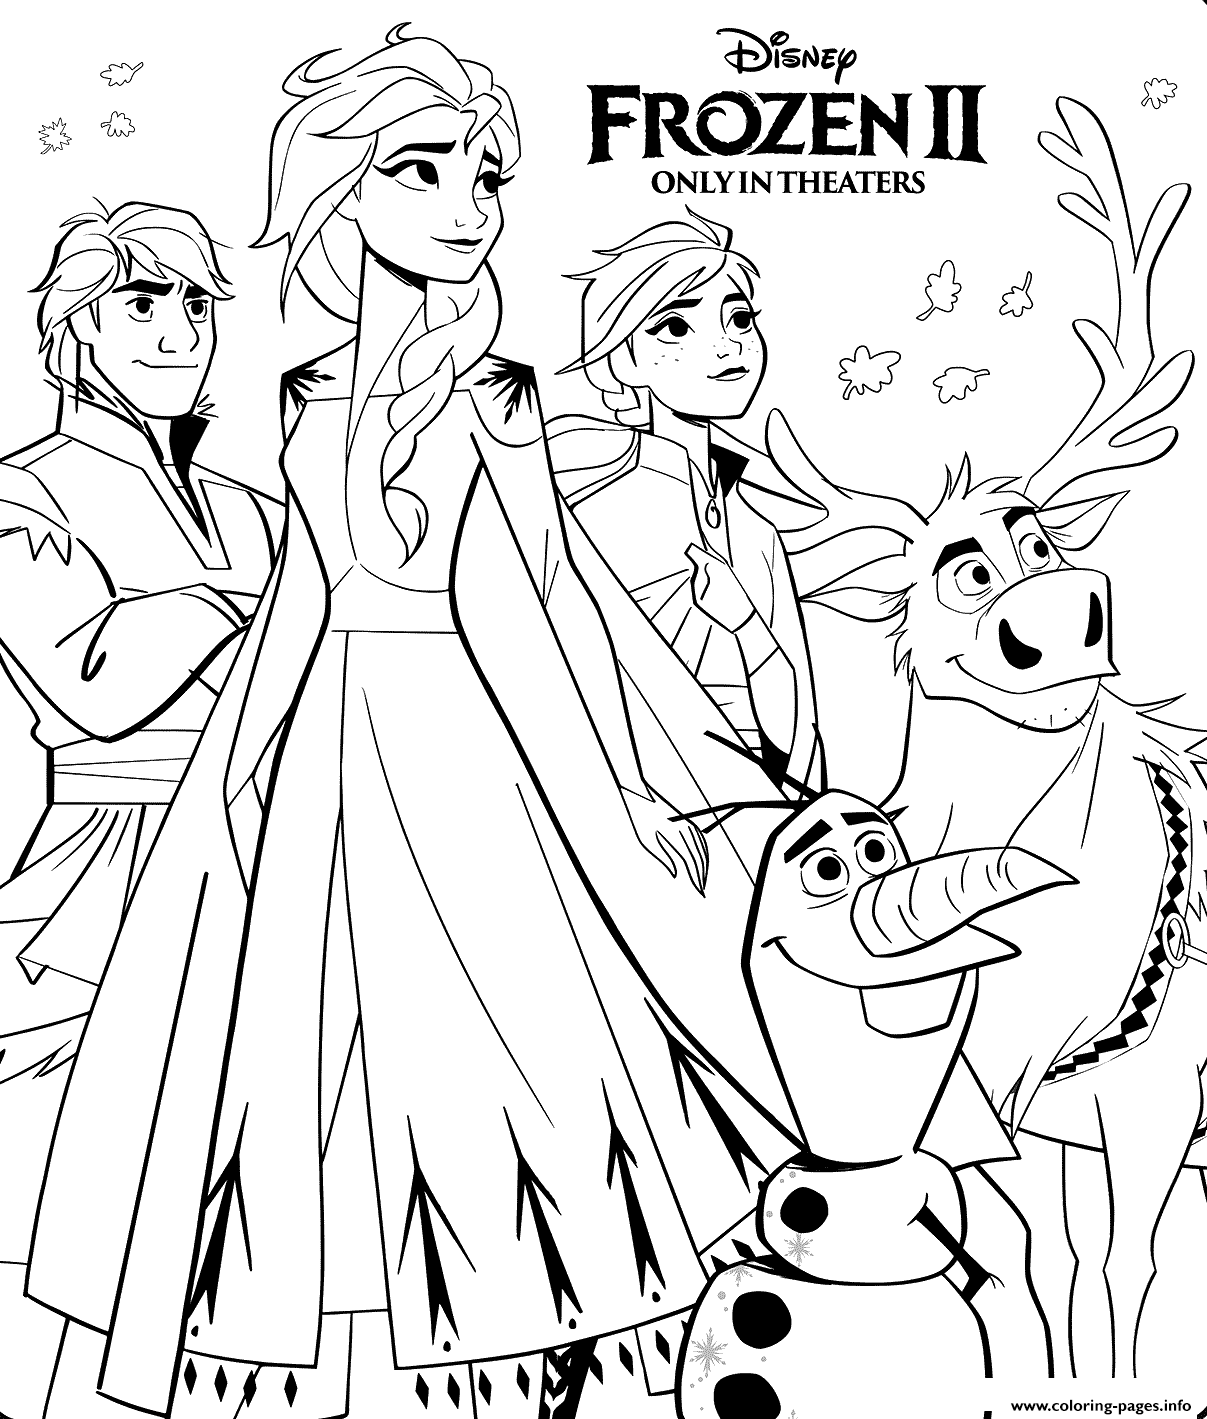 Print Disney Frozen 2 Coloring Pages Cute Coloring Pages Birthday Coloring Pages Disney Princess Coloring Pages